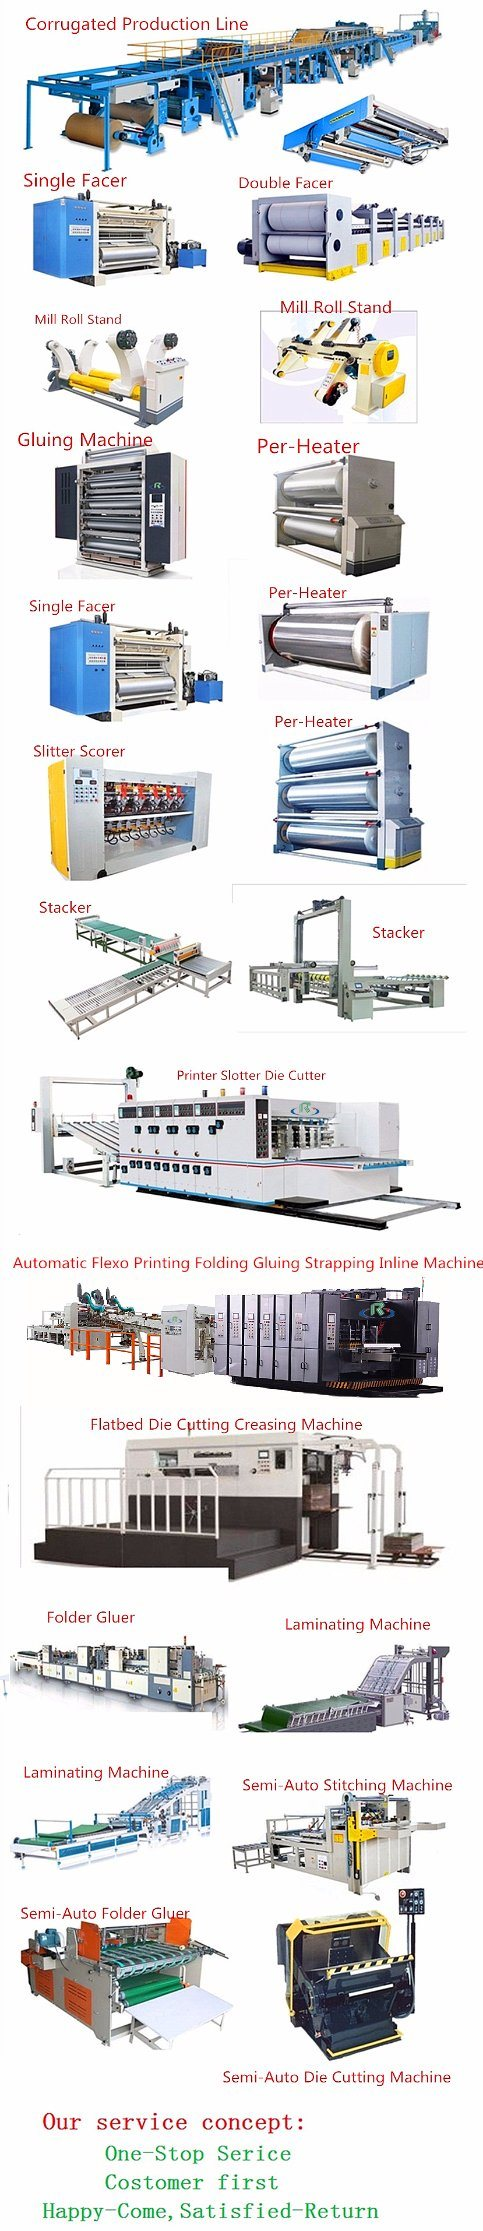 Vacuum Suction Fingerless Model Single Facer Corrugated Machine